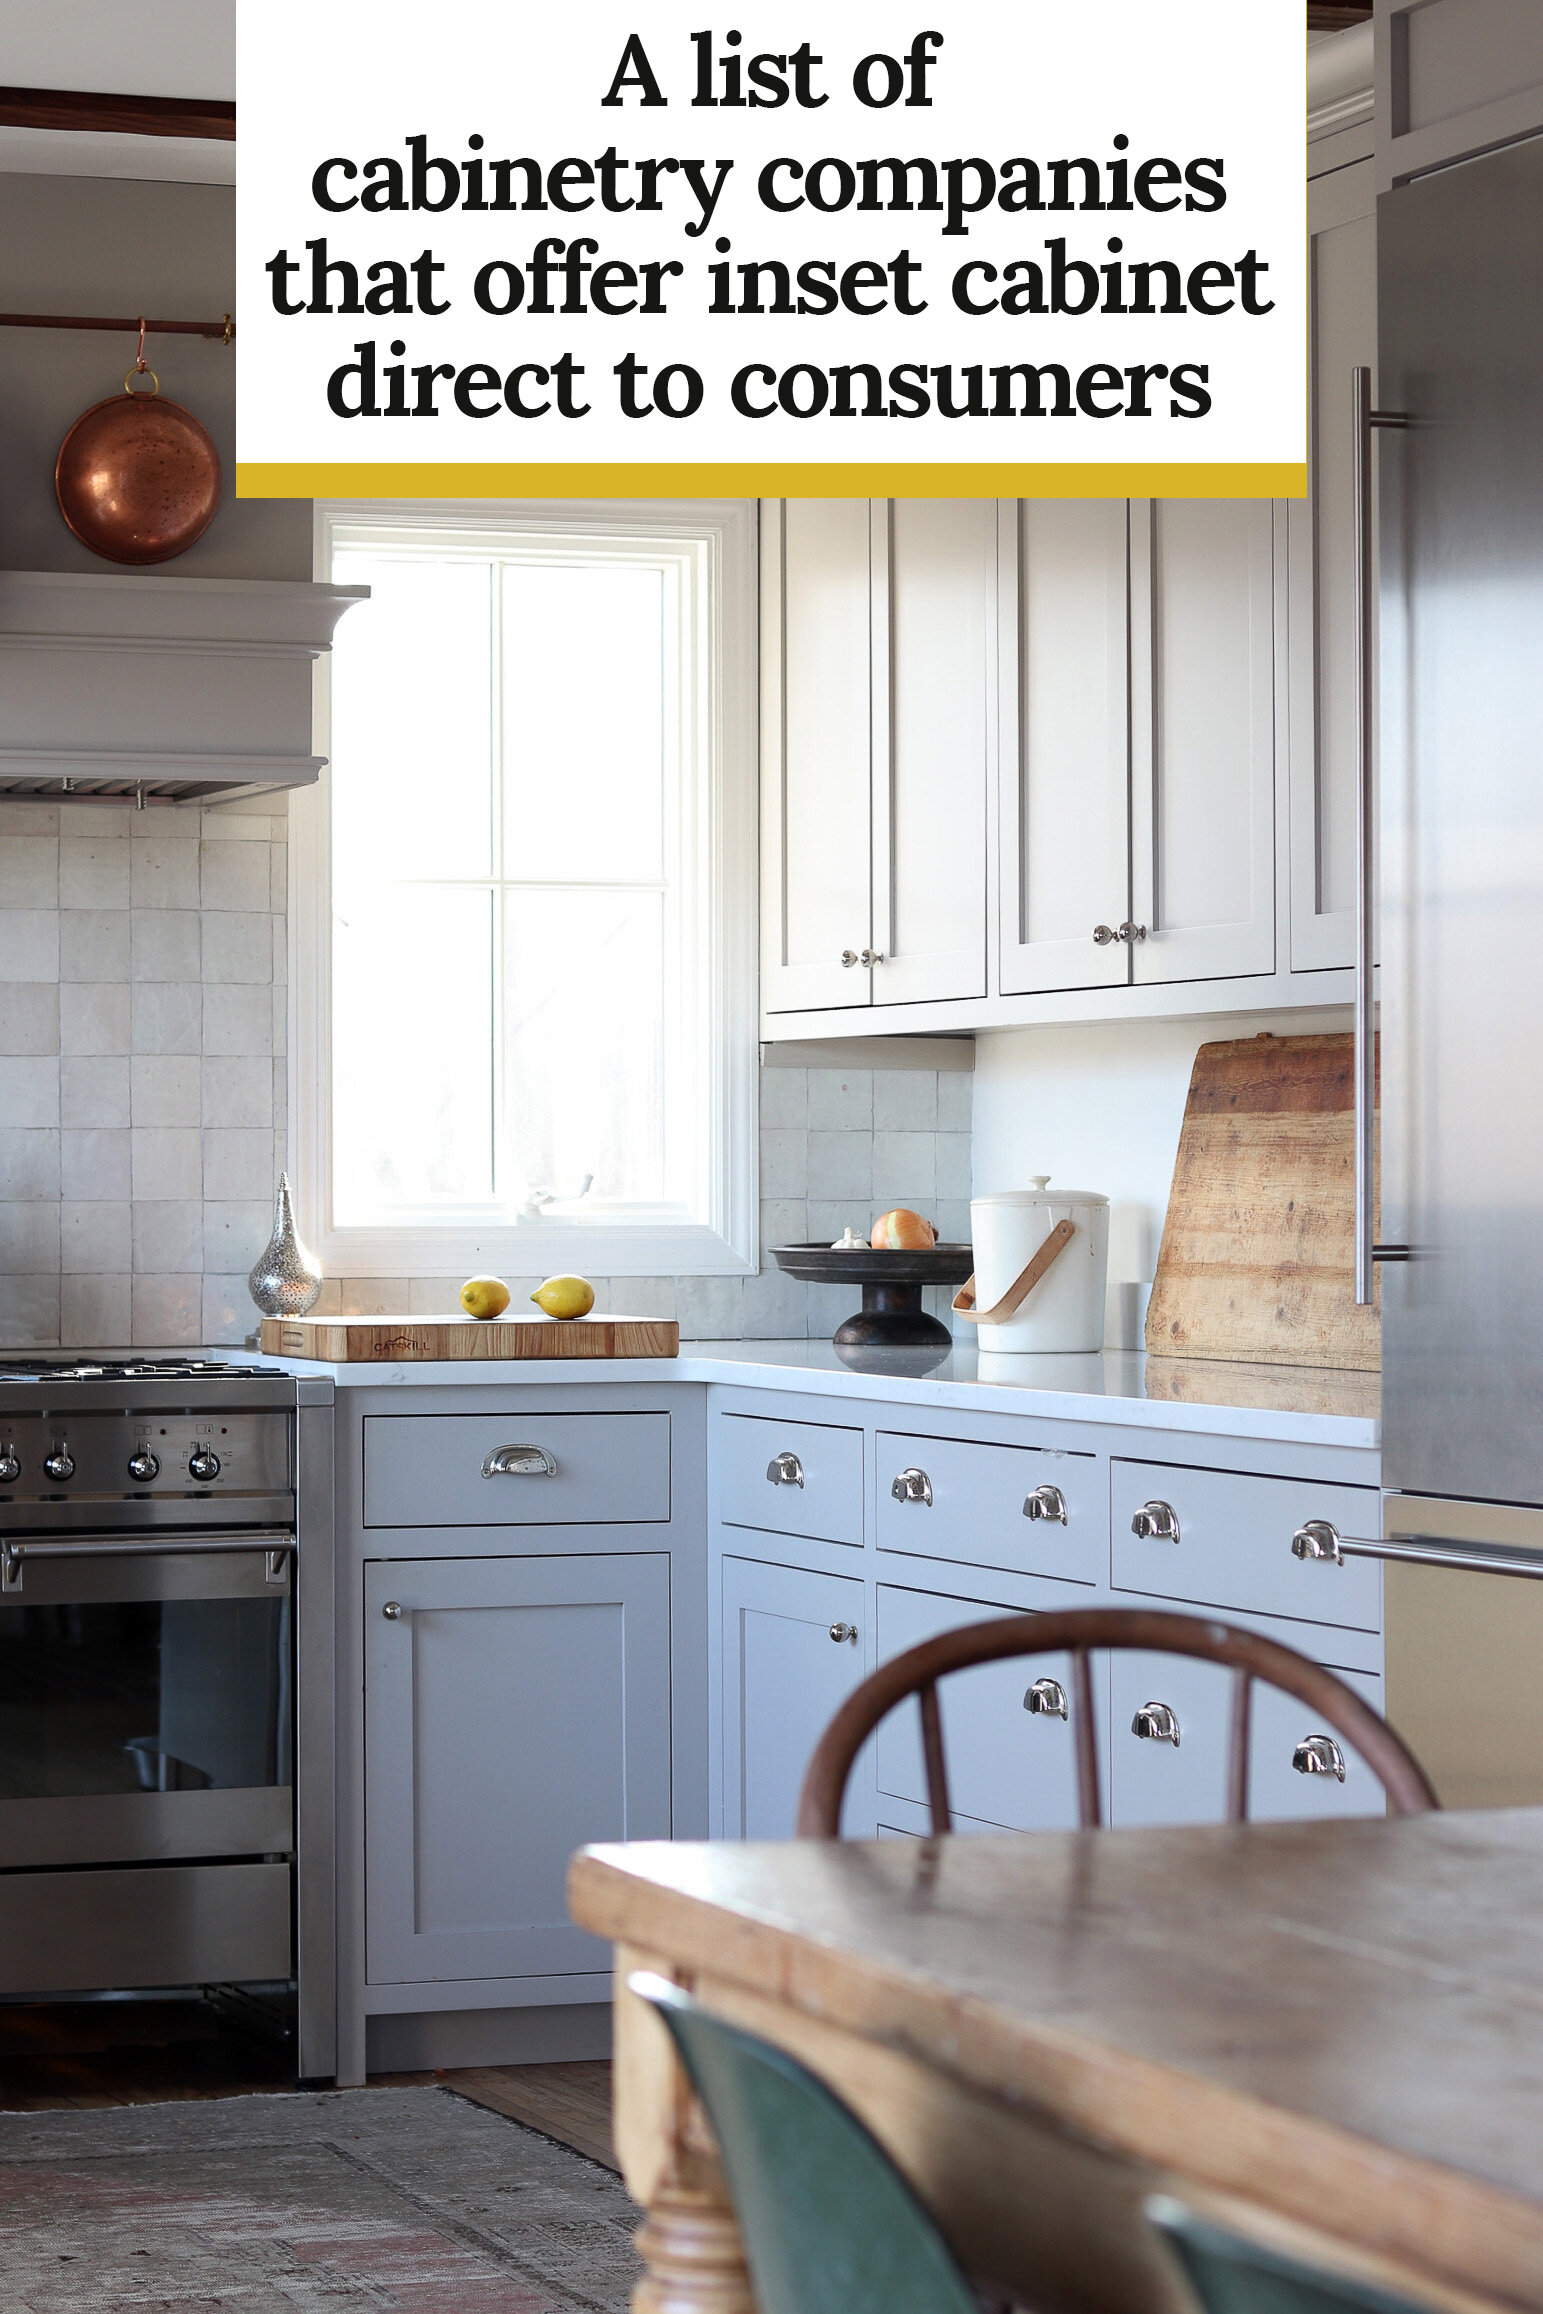 Kitchen Cabinets Direct Where To Buy Inset Cabinets Direct — The Gold Hive